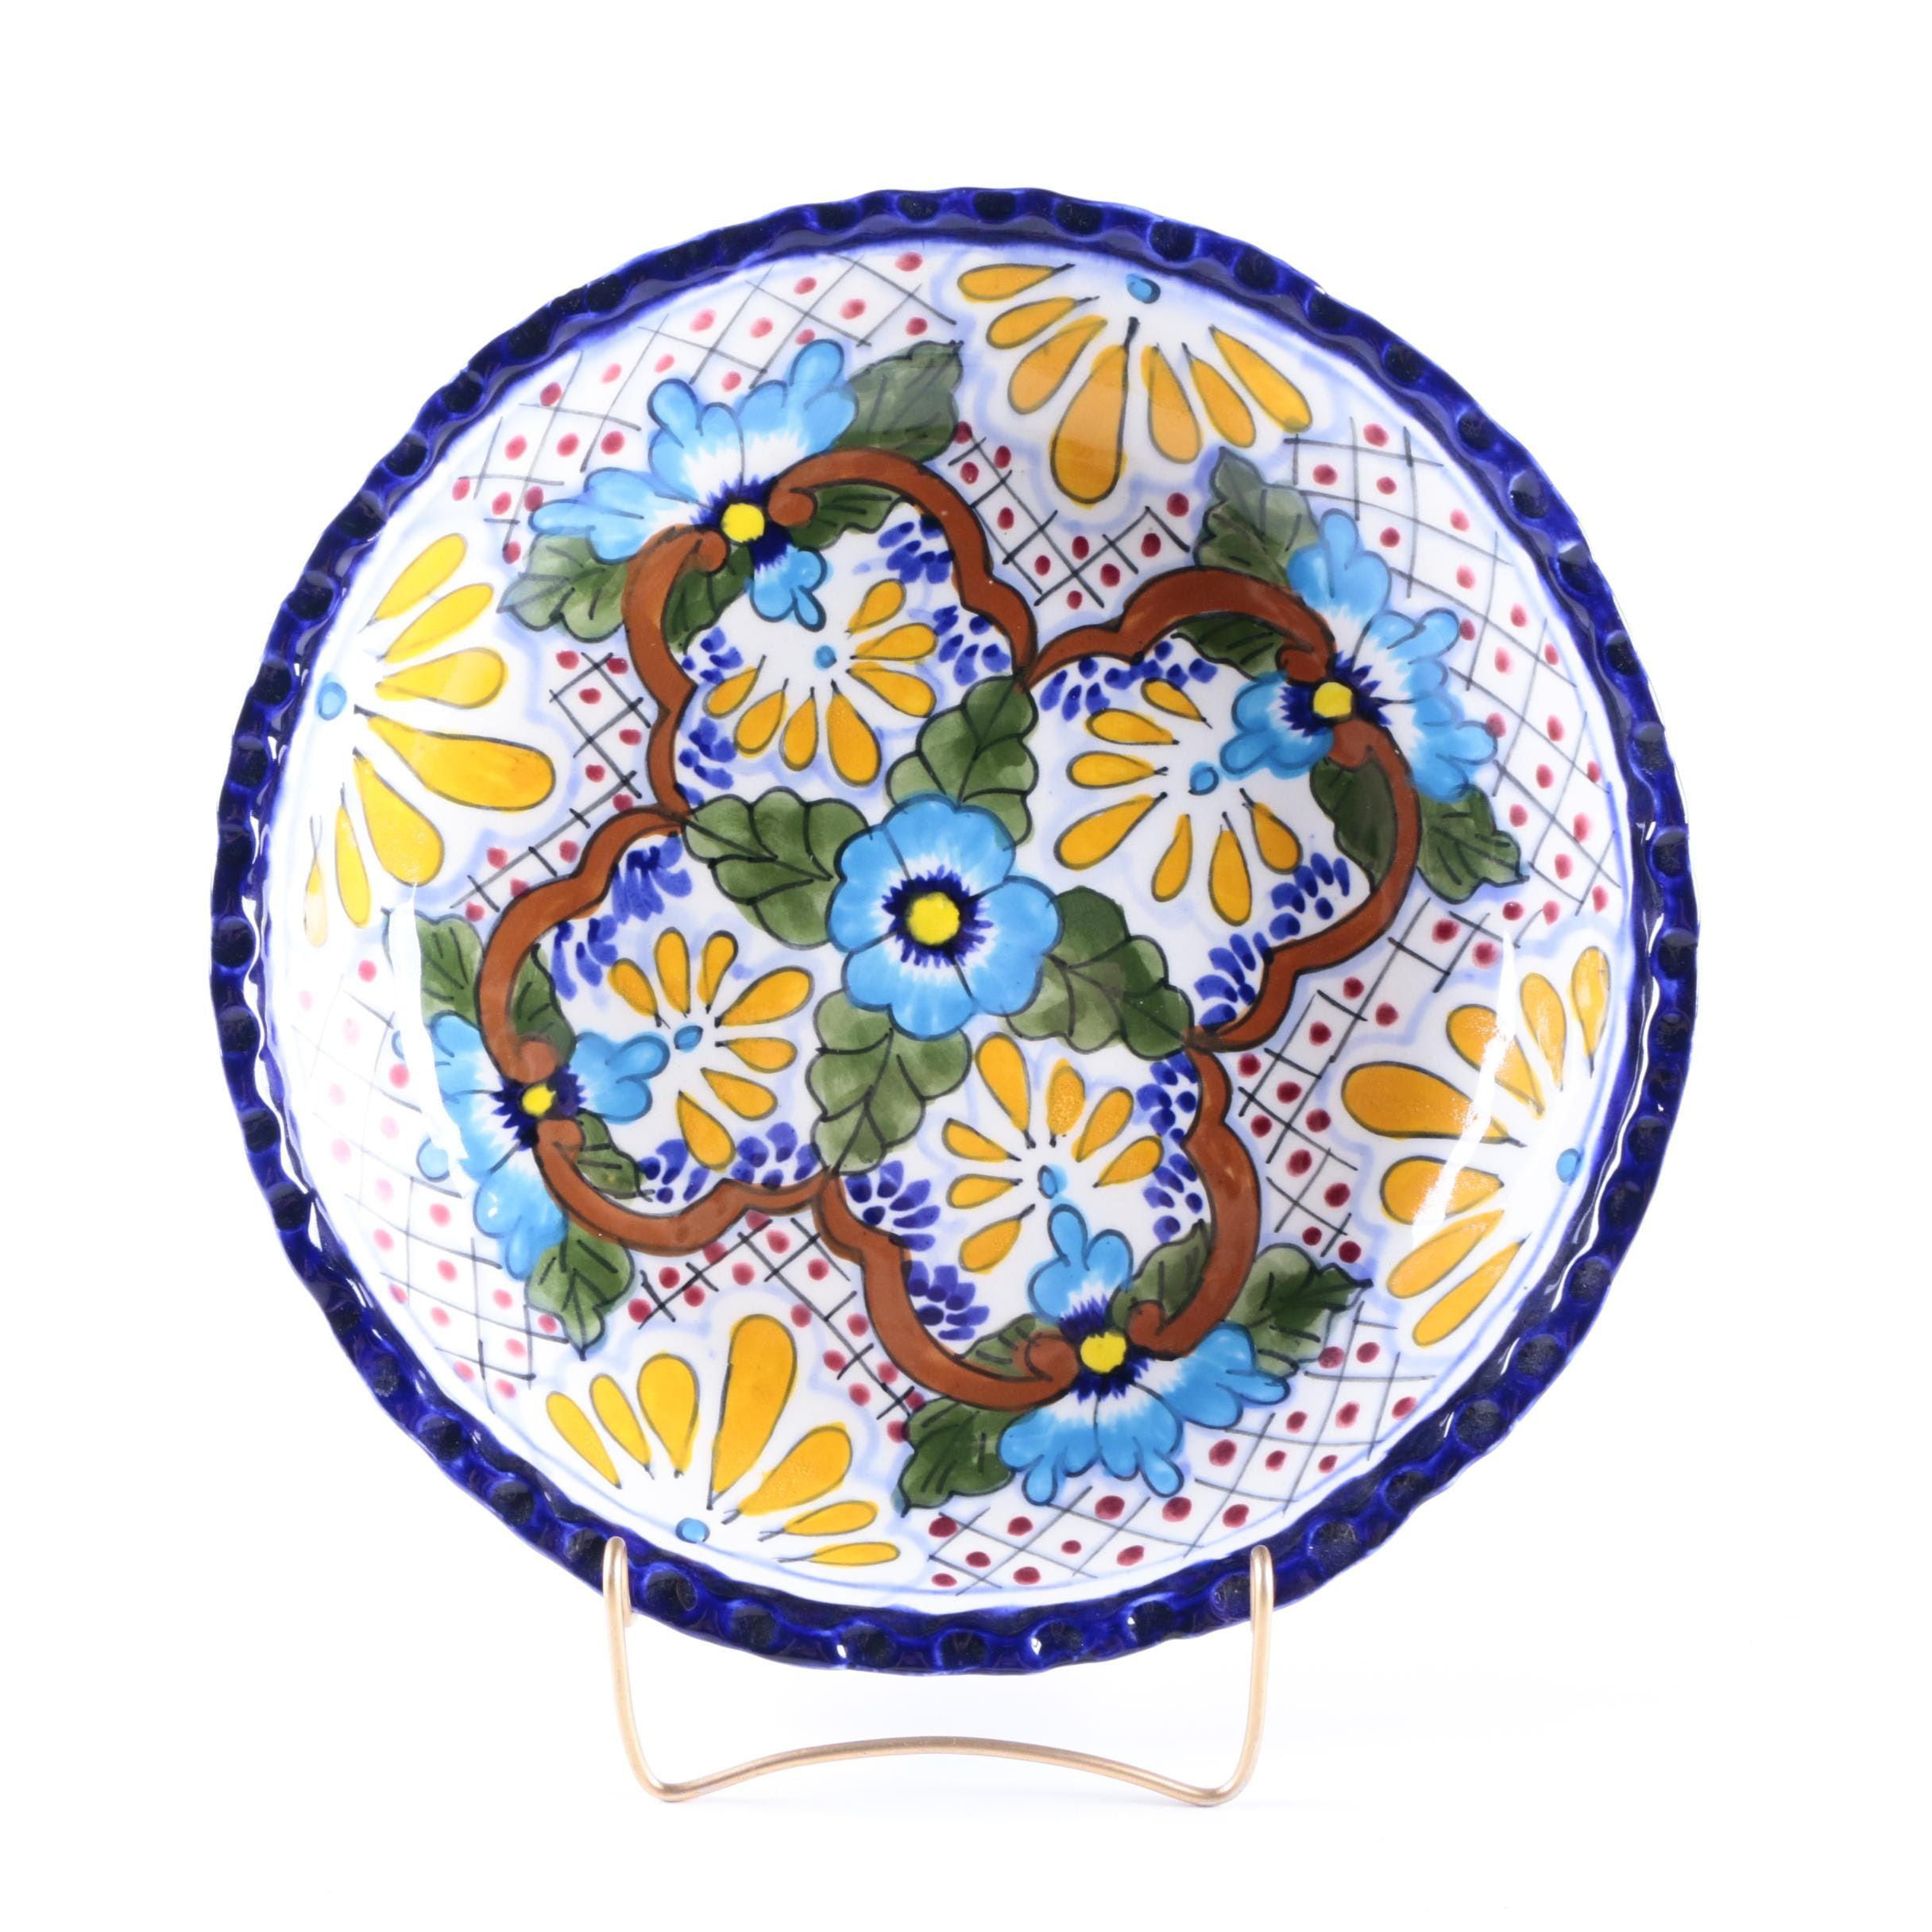 Hand-Decorated Plate from Mexico